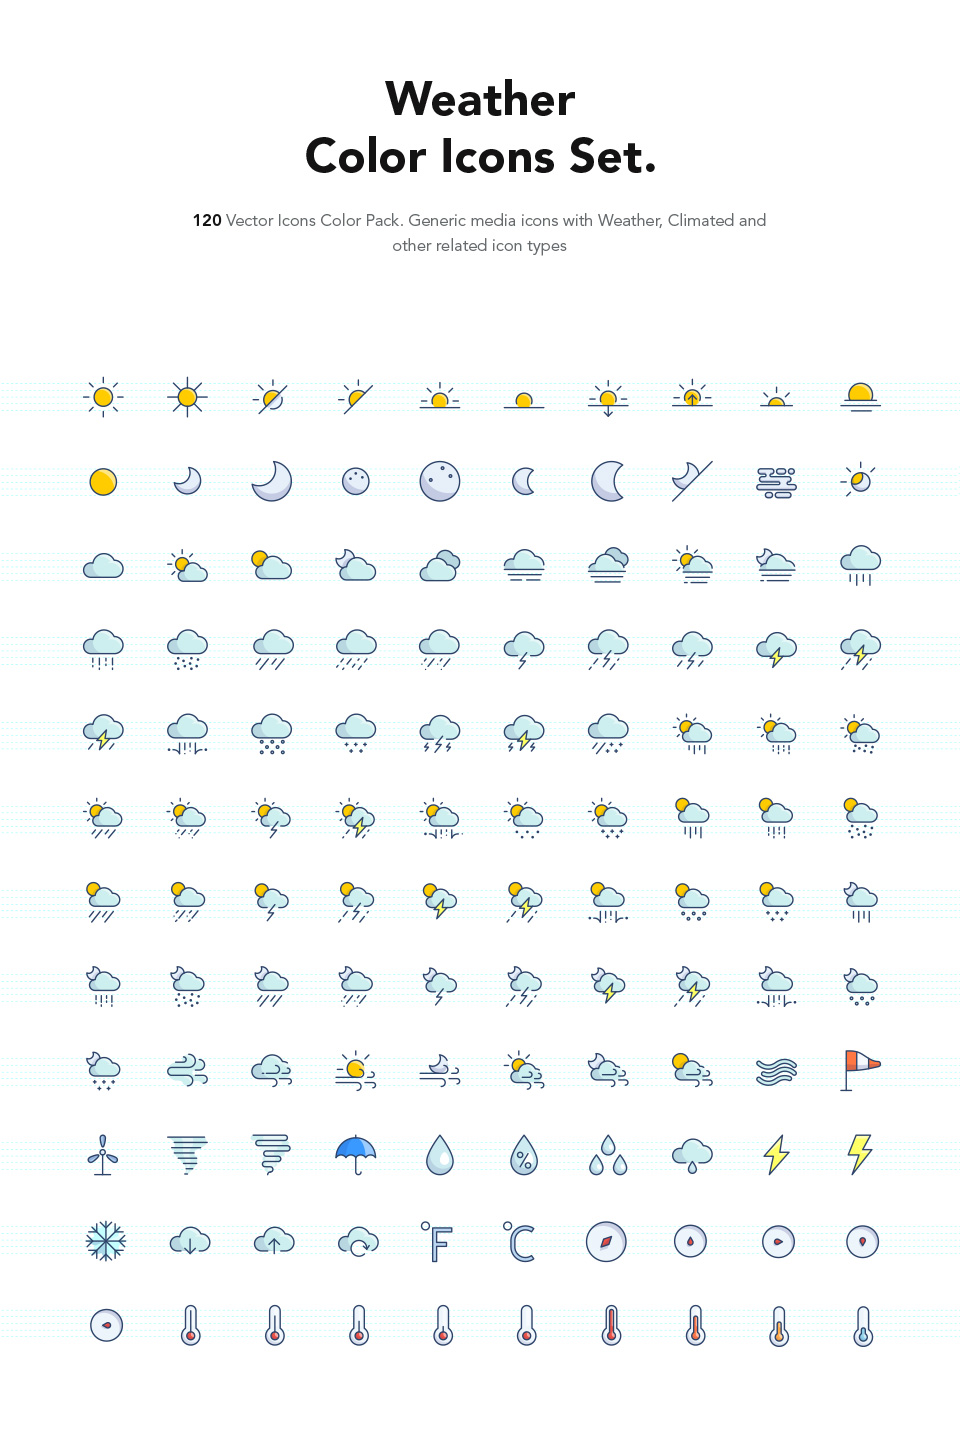 Free Weather Color Icons